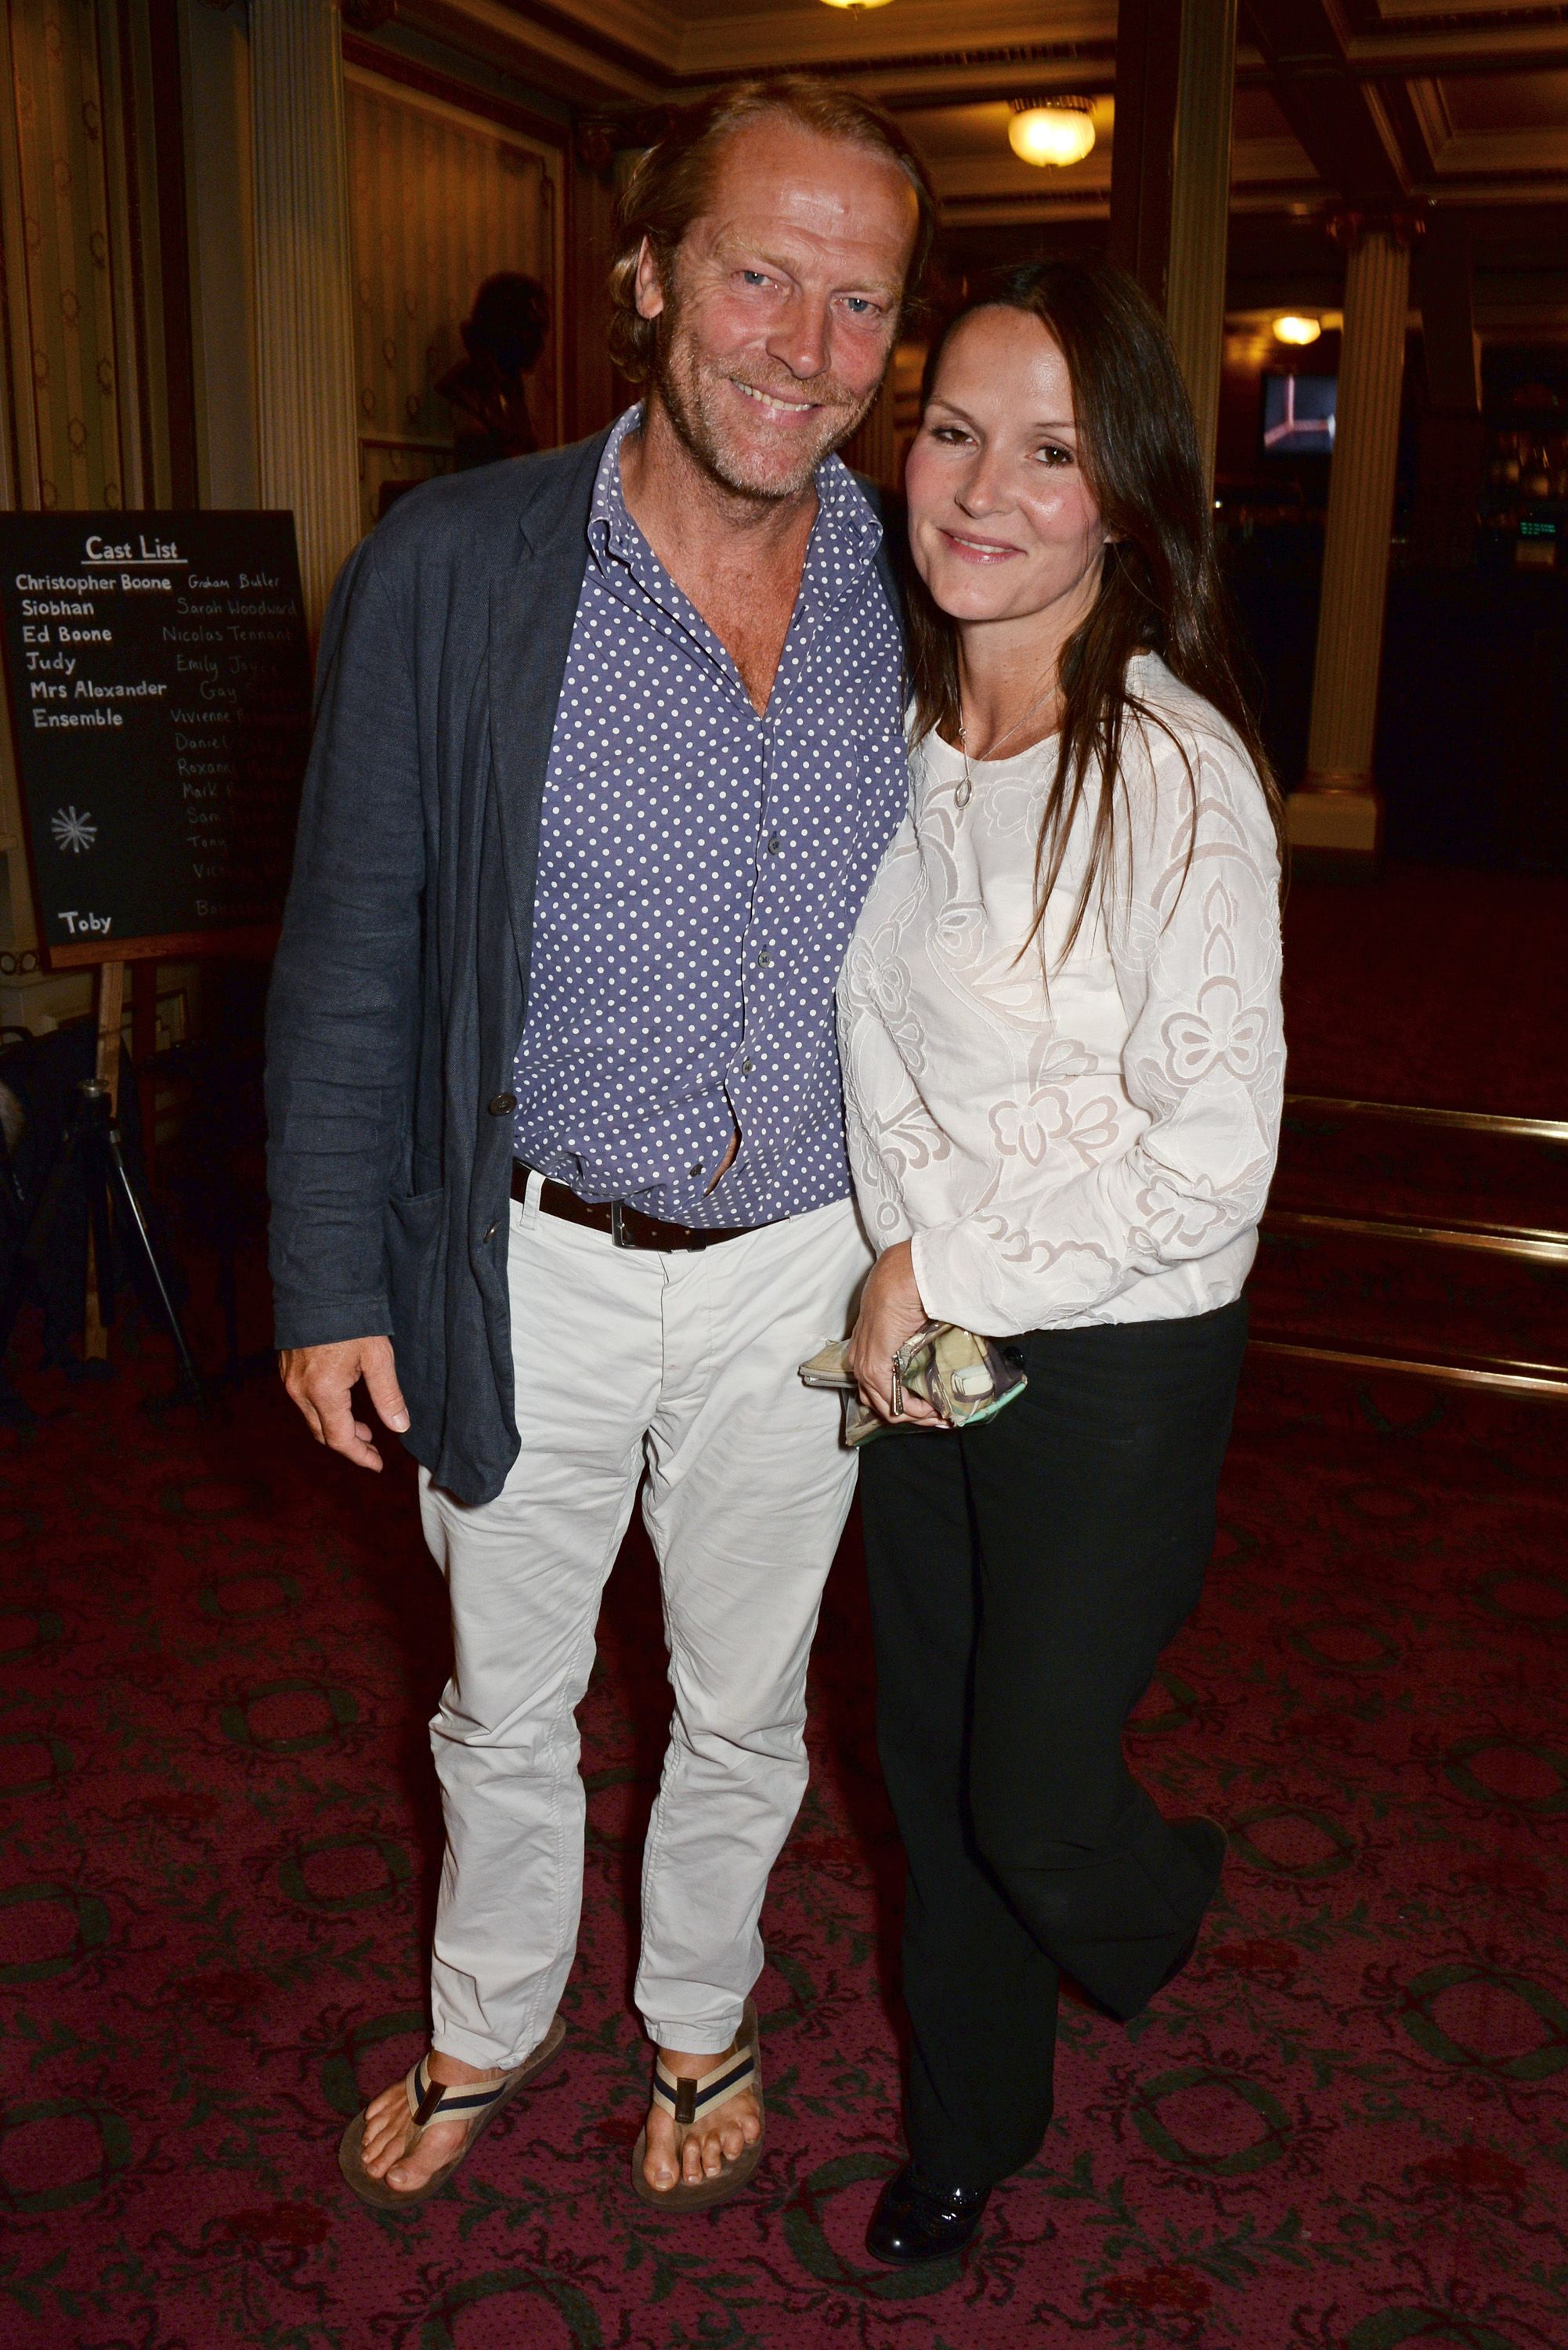 Iain Glen (Ser Jorah) and Charlotte Emmerson The couple have been together since 2005 .